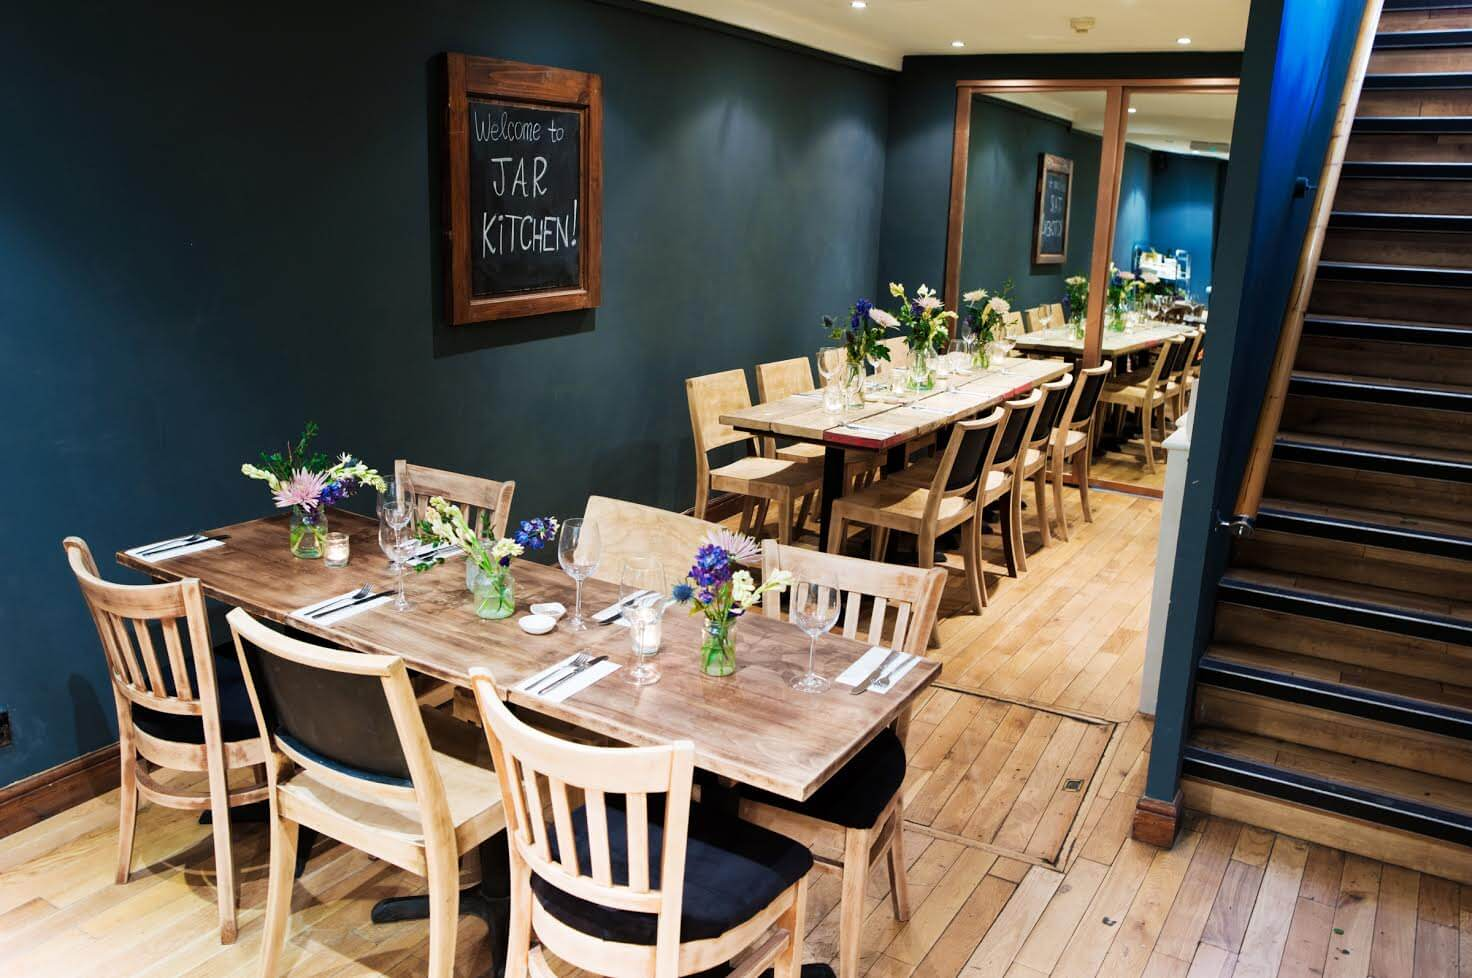 London restaurants best new openings in april 2015 for New kitchen london